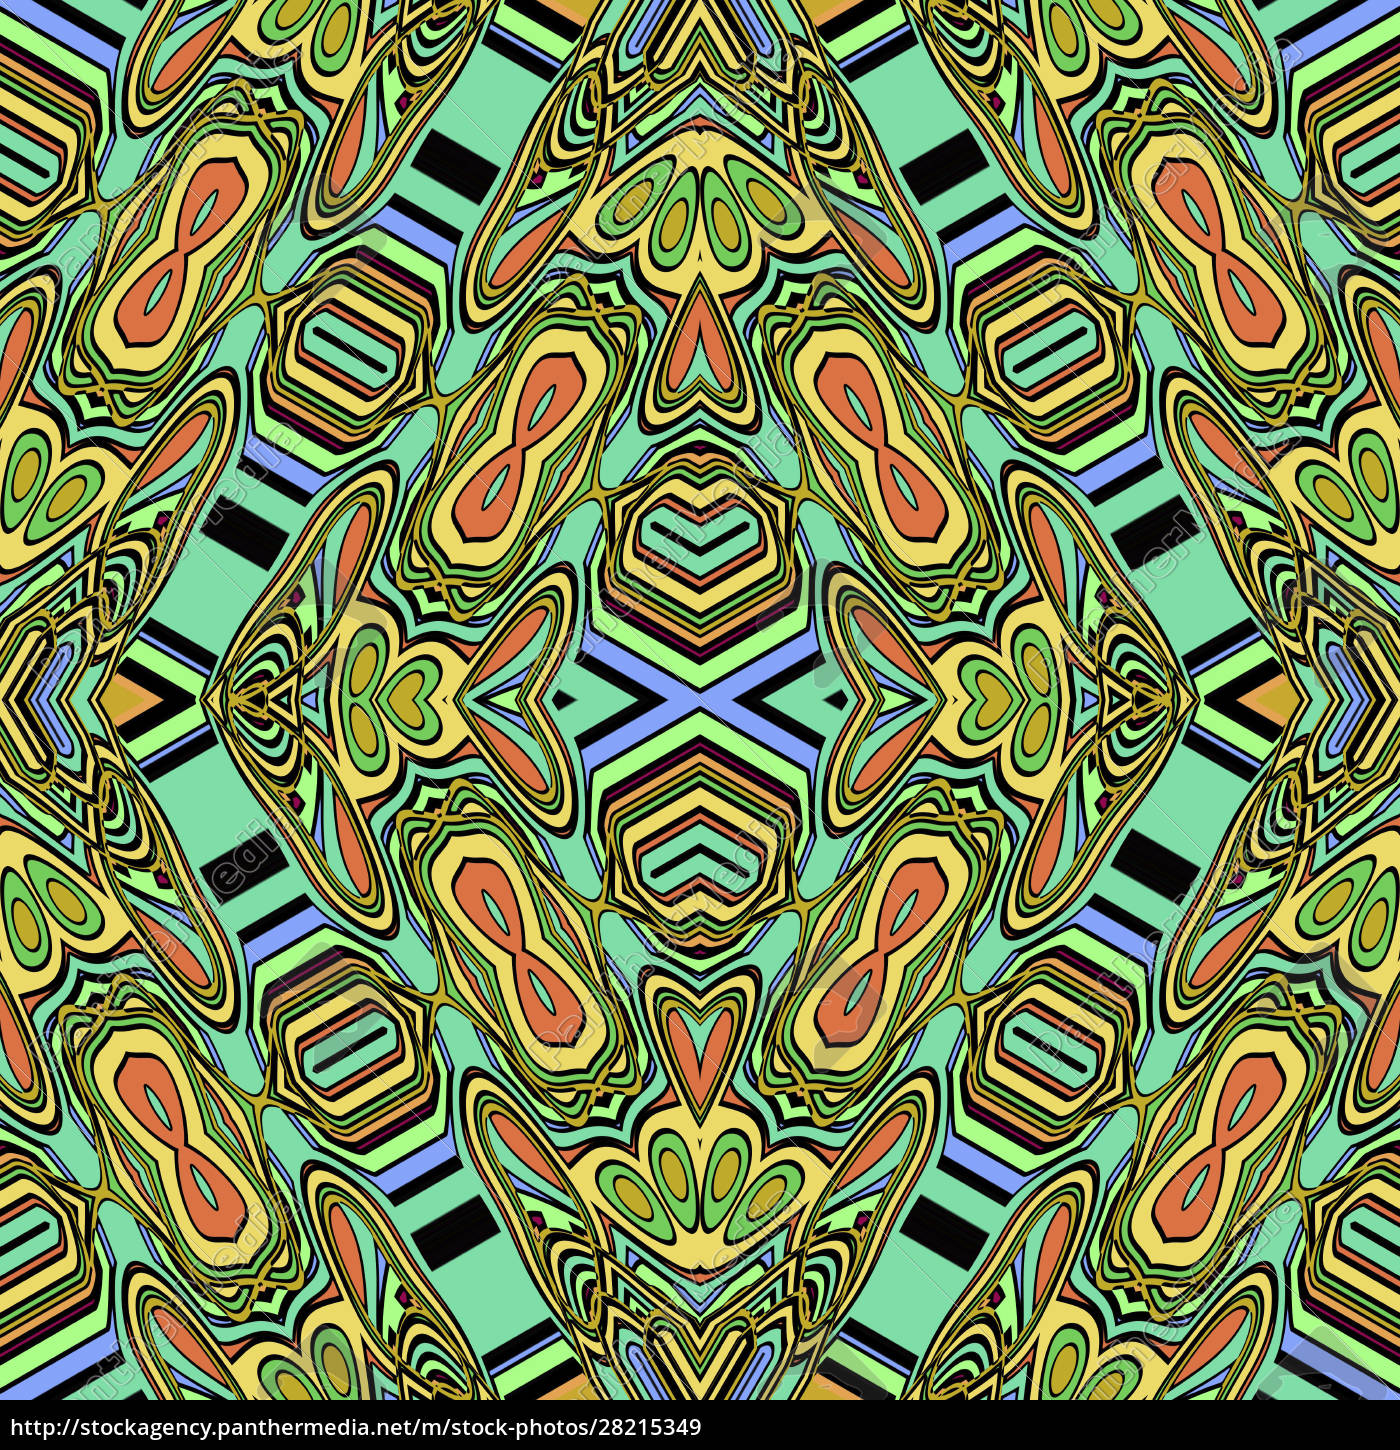 colorful, allover, repeating, pattern, tile - 28215349